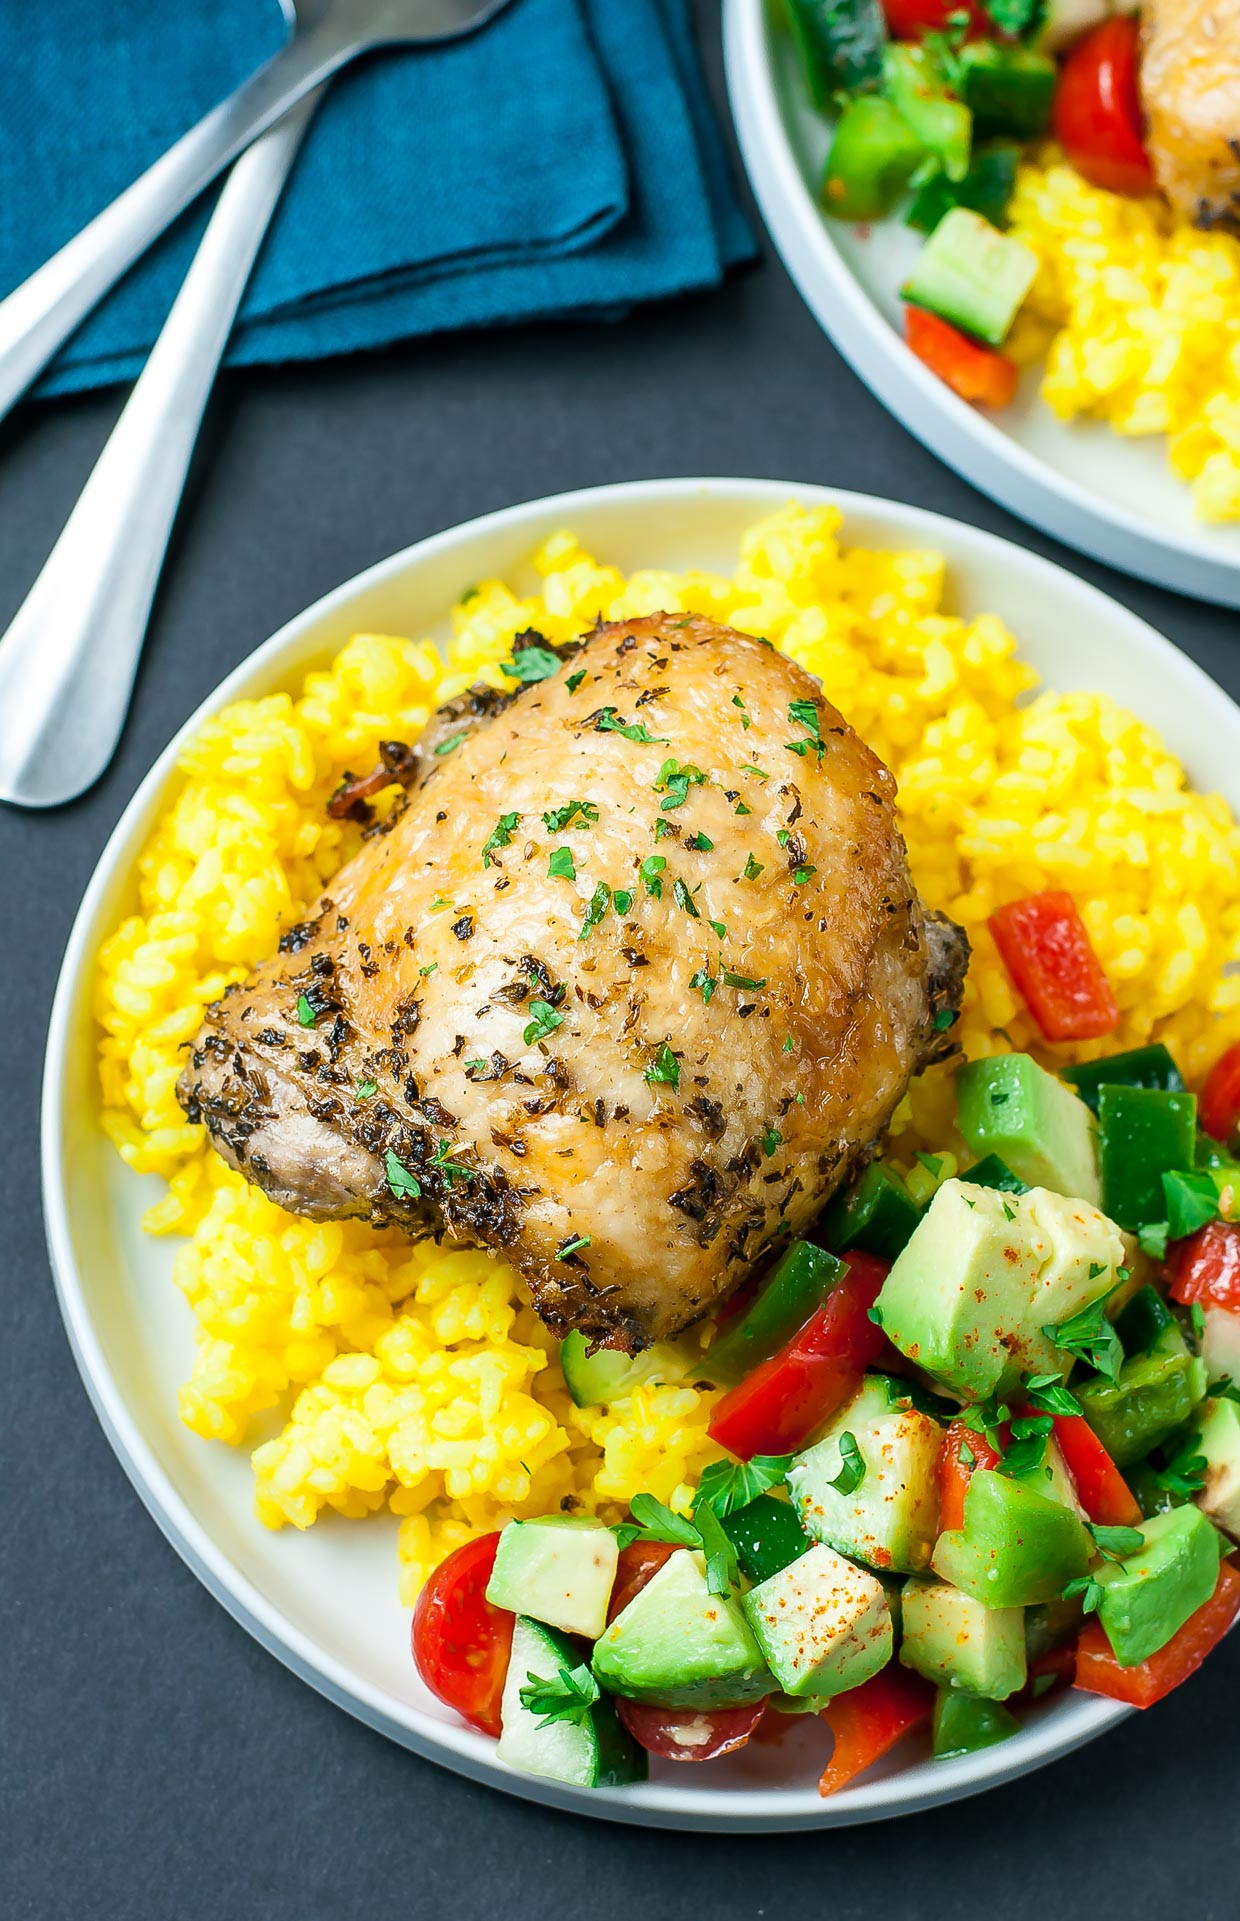 Chicken Thighs And Rice  Crispy Baked Chicken Thighs with Garlic Turmeric Rice